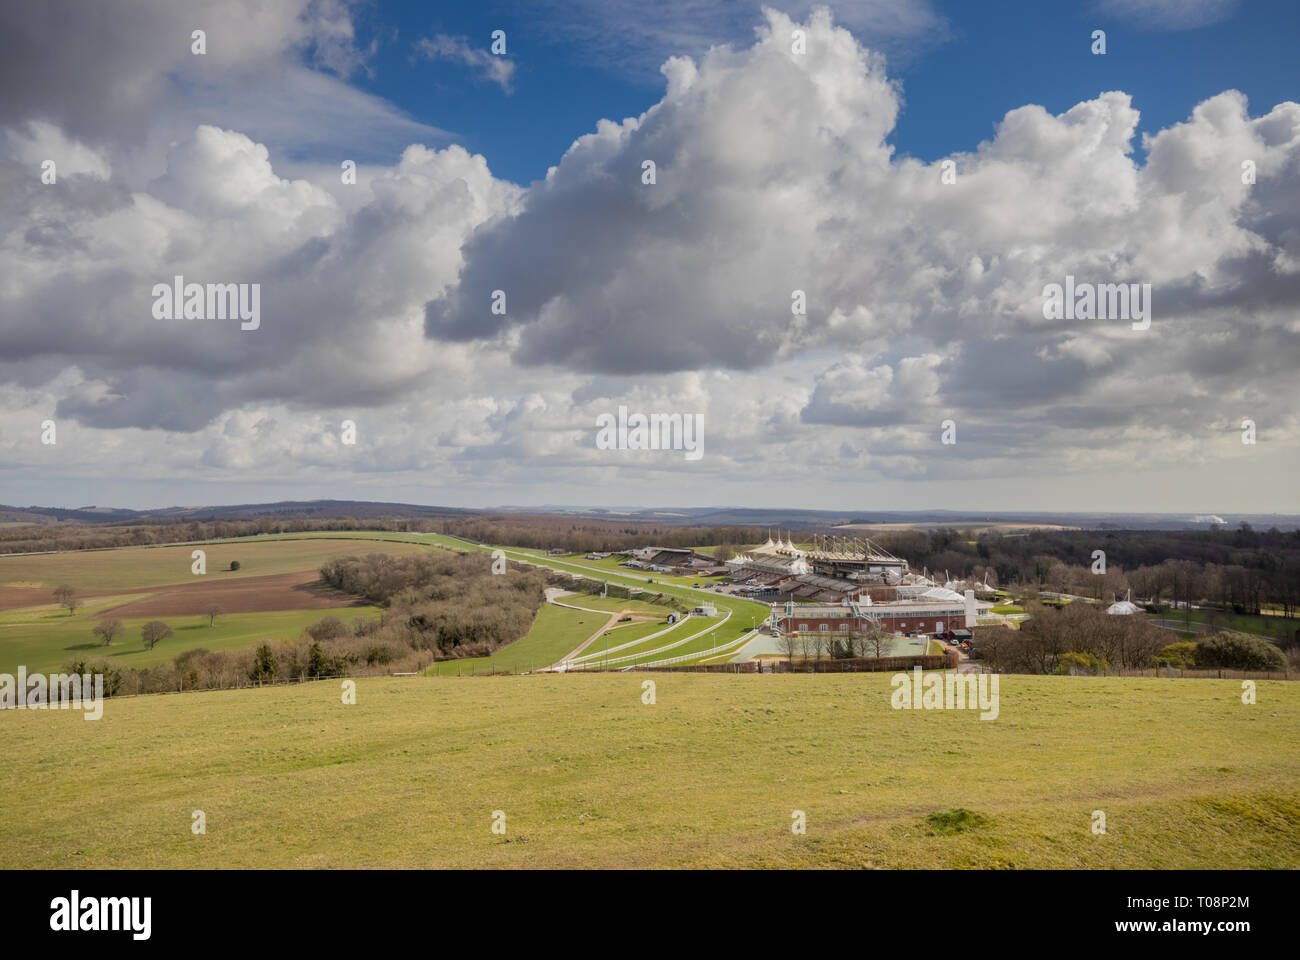 Views towards Goodwood Estate Racecourse taken from The Trundle (St Roche's Hill) in the South Downs National Park near Chichester, West Sussex, UK - Stock Image